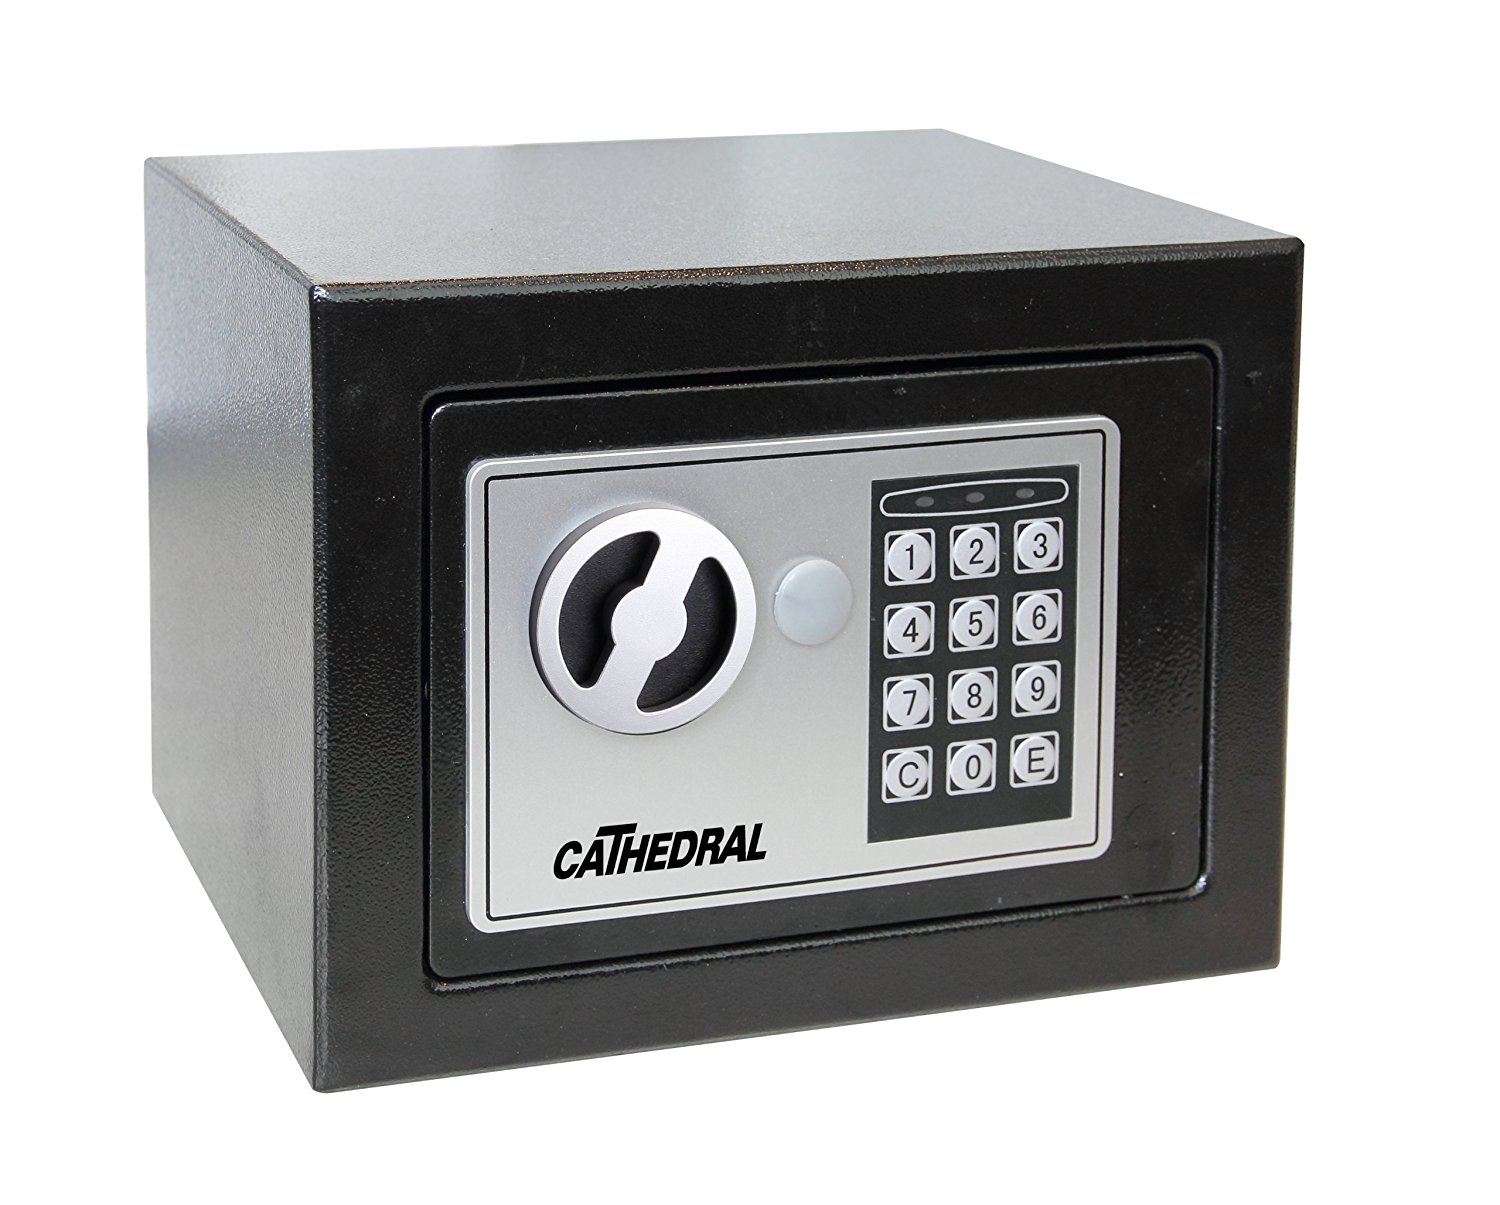 Cathedral KC80 Value Key Cabinet with 80 Keys